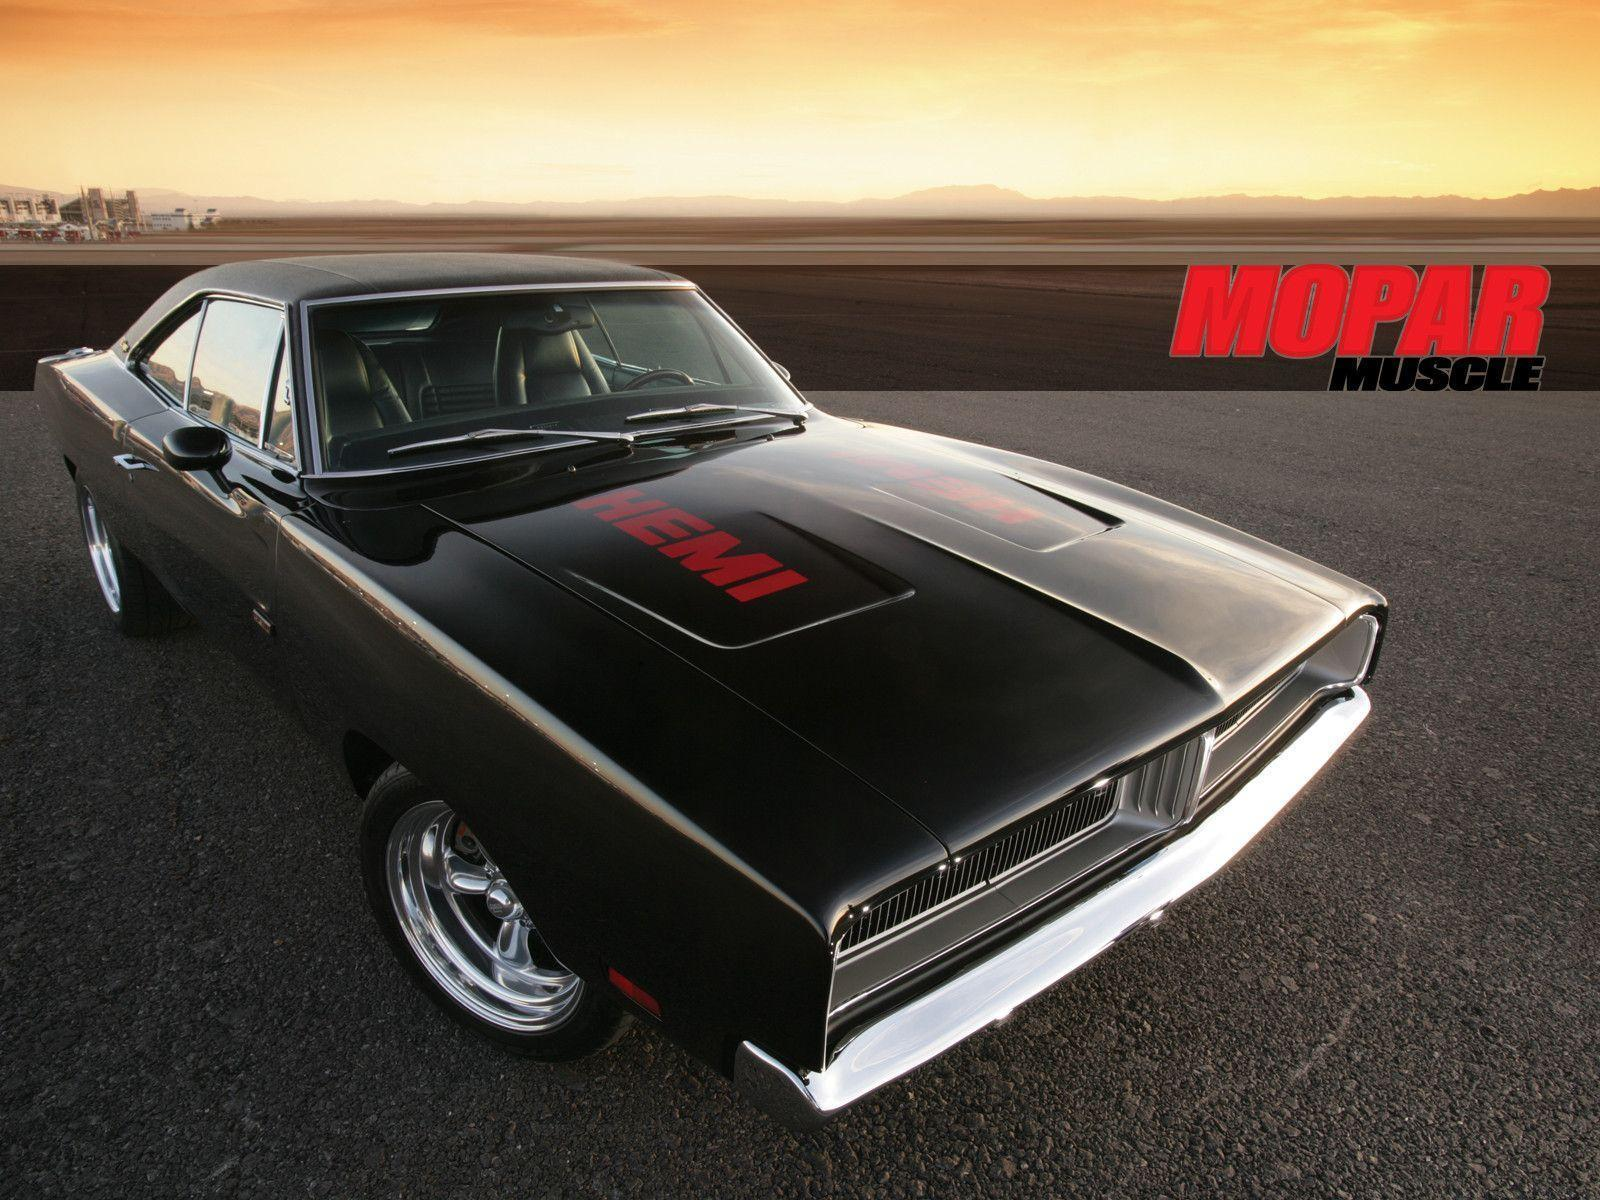 1969 charger wallpaper - photo #8